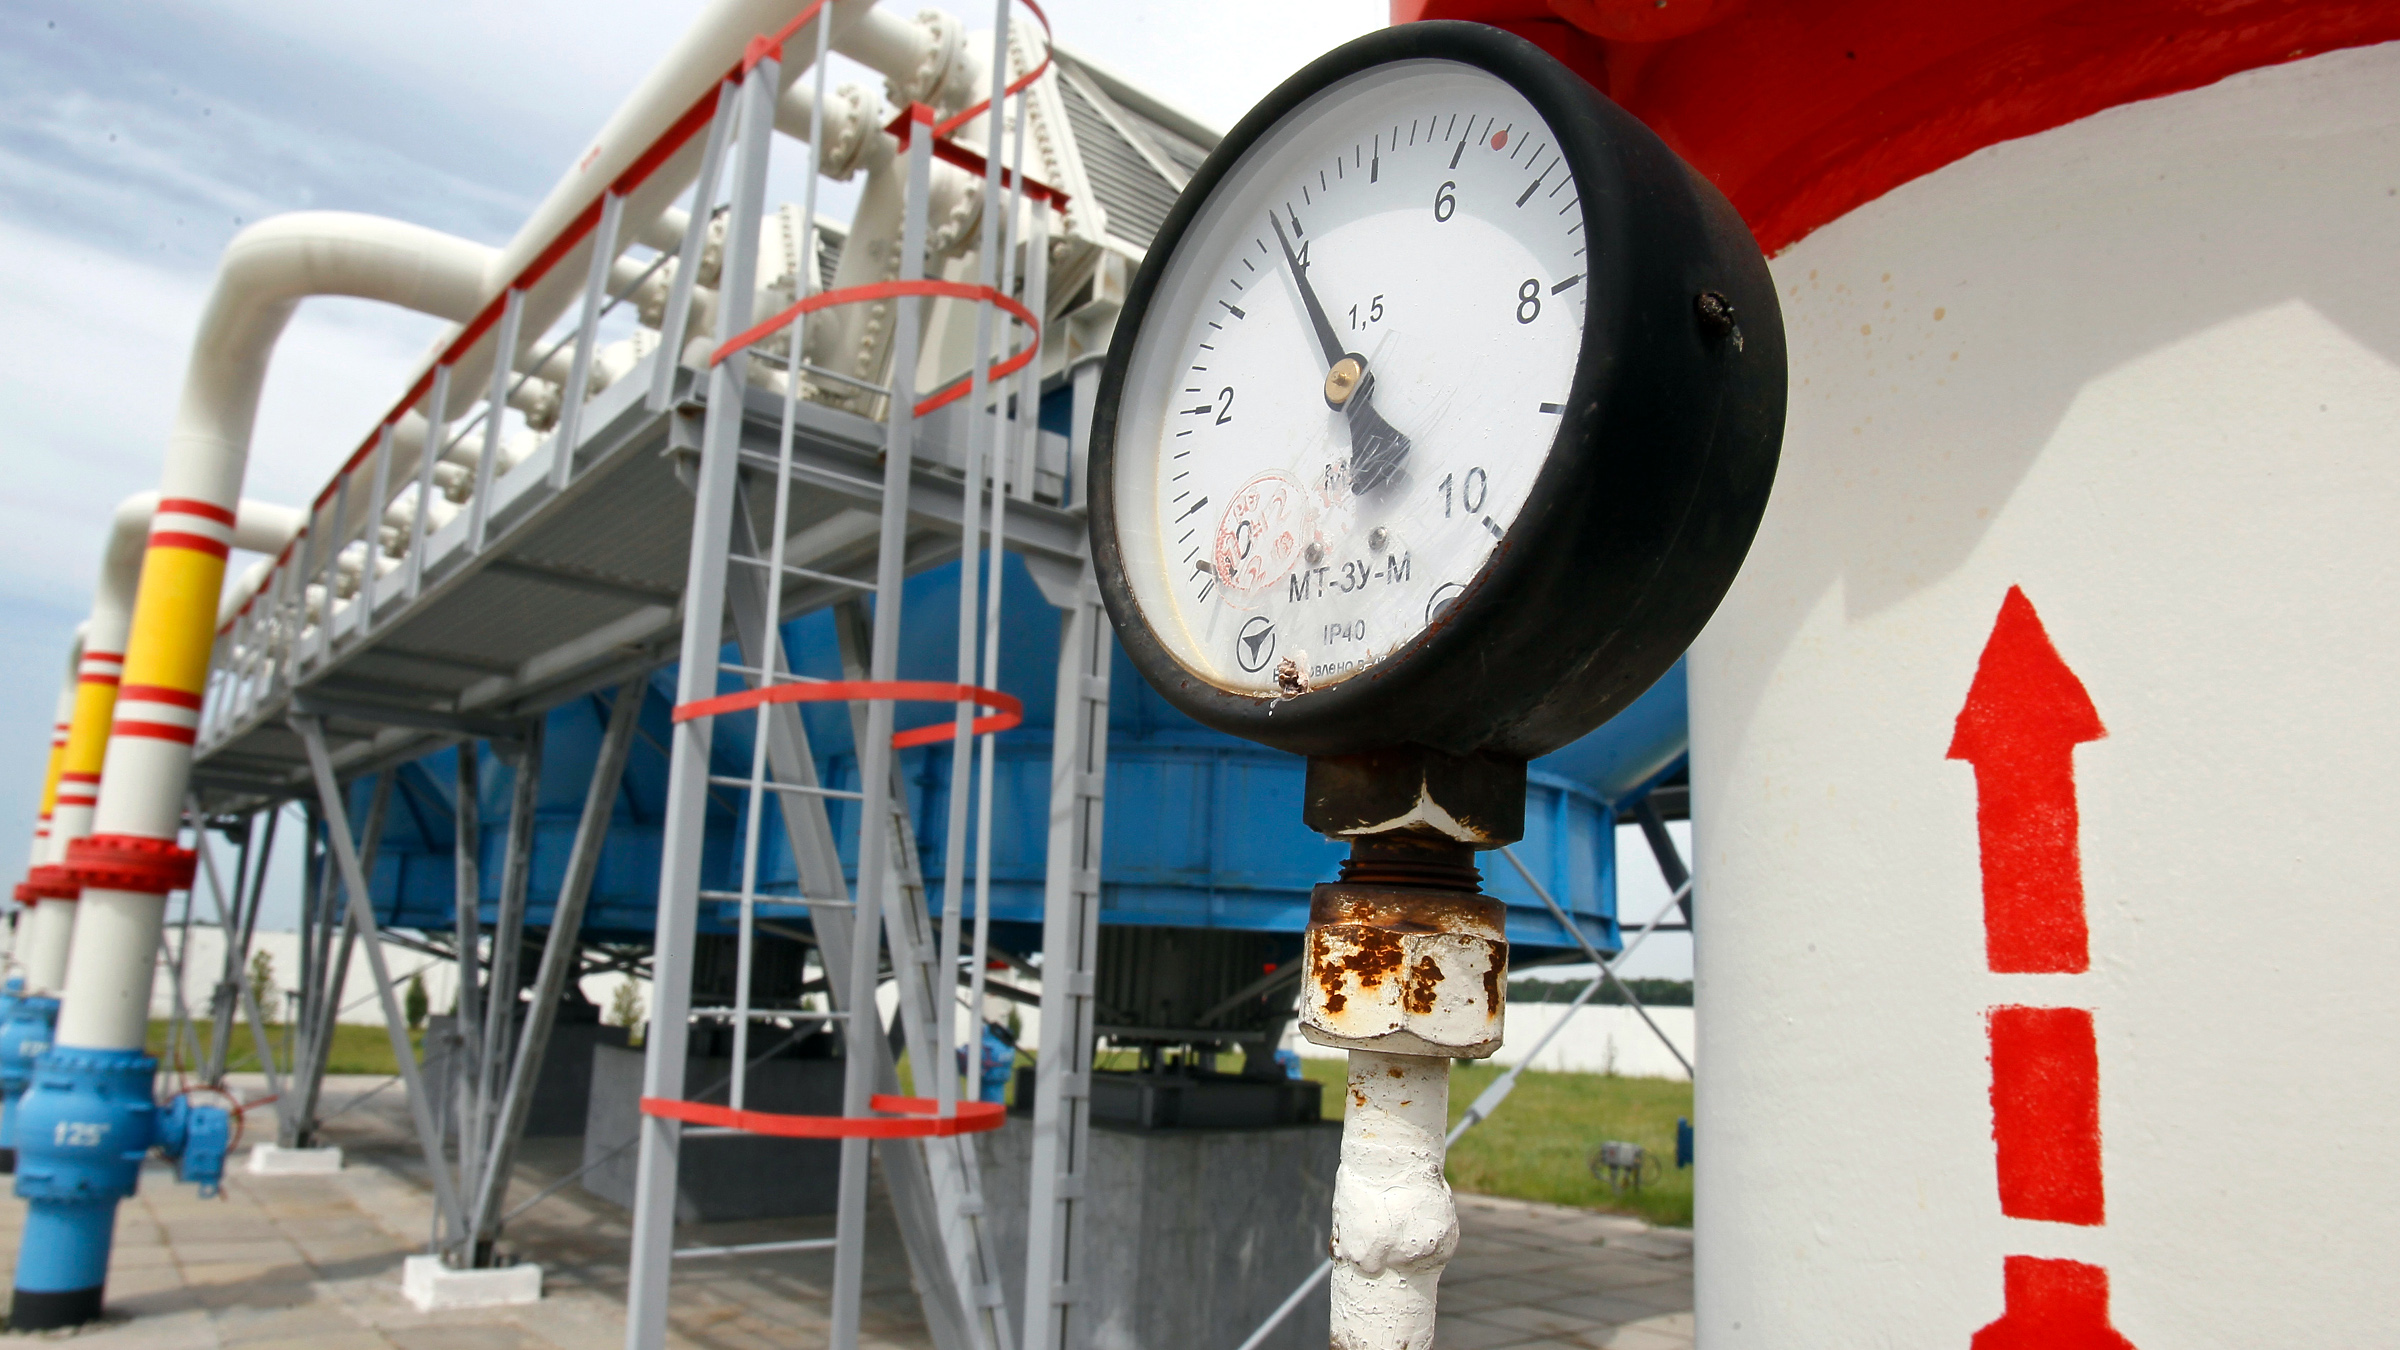 A pressure gauge is seen at an underground gas storage facility in the village of Mryn, 120 km (75 miles) north of Kiev May 21, 2013. Ukraine's government asked parliament in April to lift a ban on the privatization of gas pipelines that pump Russian gas to Europe, which could allow Kiev to sell or lease them to Moscow in return for cheaper gas supplies.